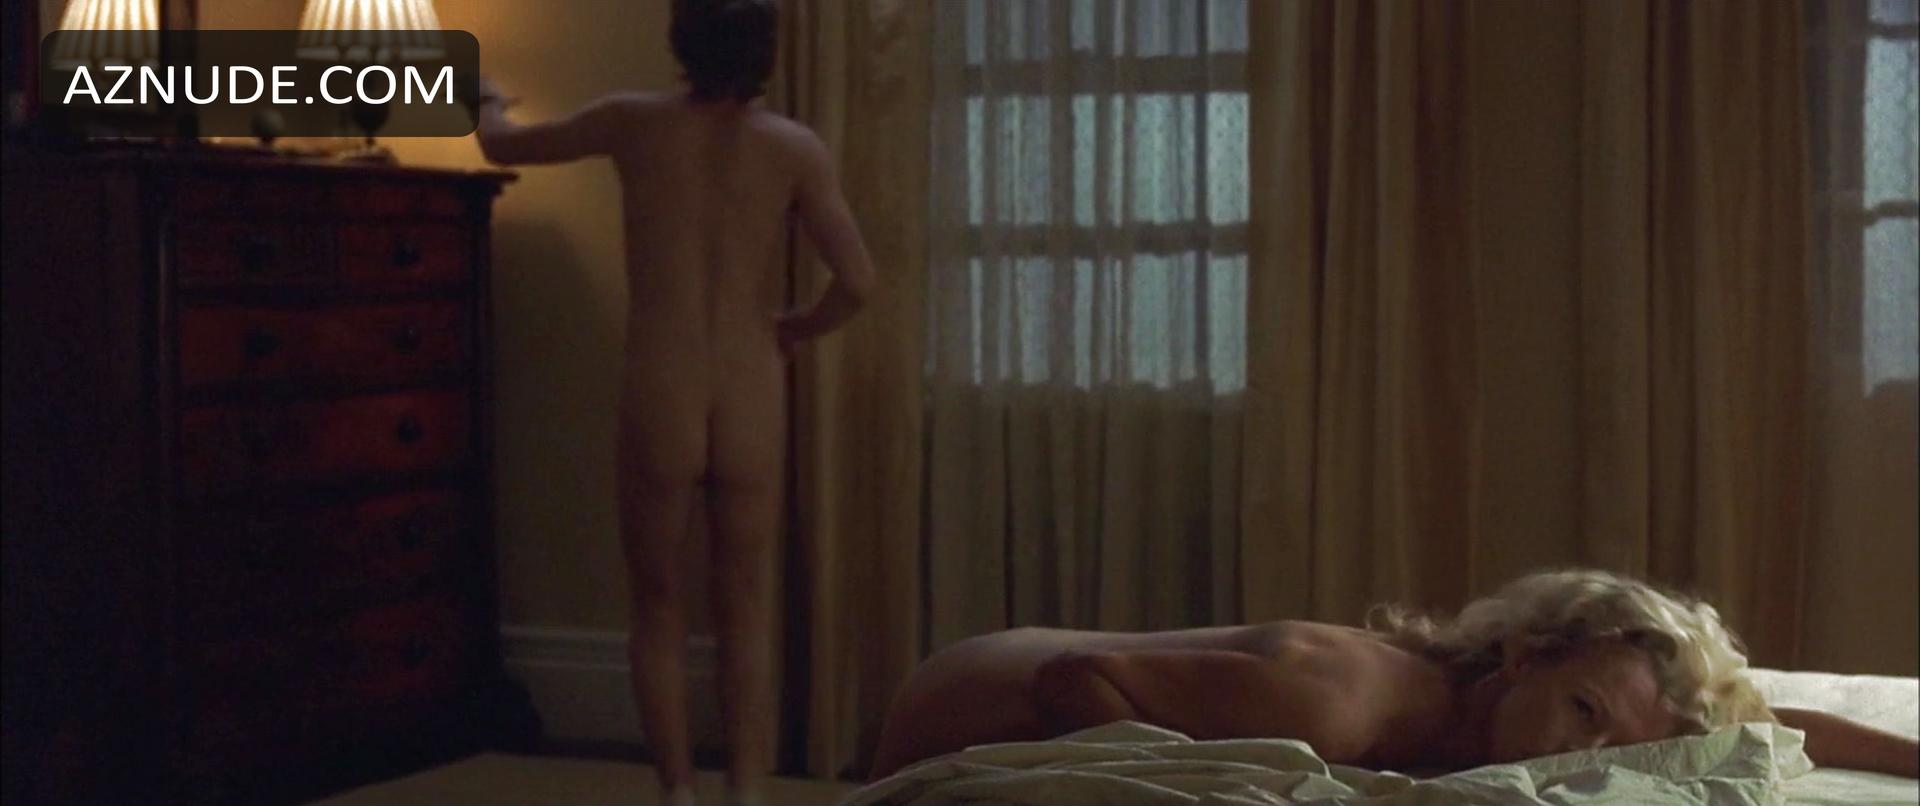 Sorry, that Kim basinger nude images are not